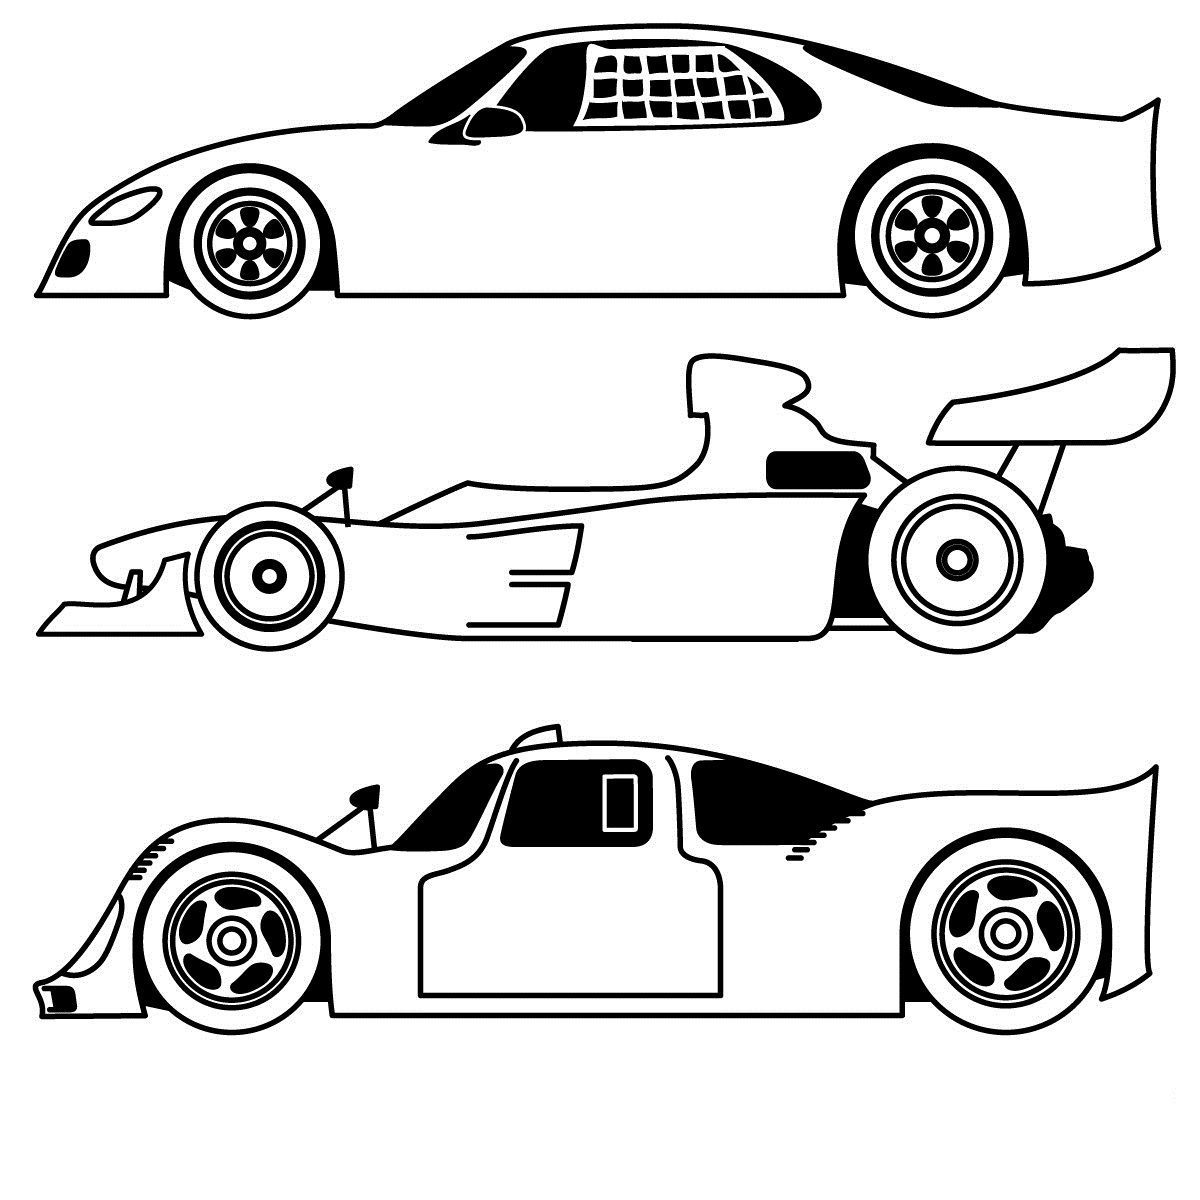 cars for coloring cars free to color for kids cars kids coloring pages for coloring cars